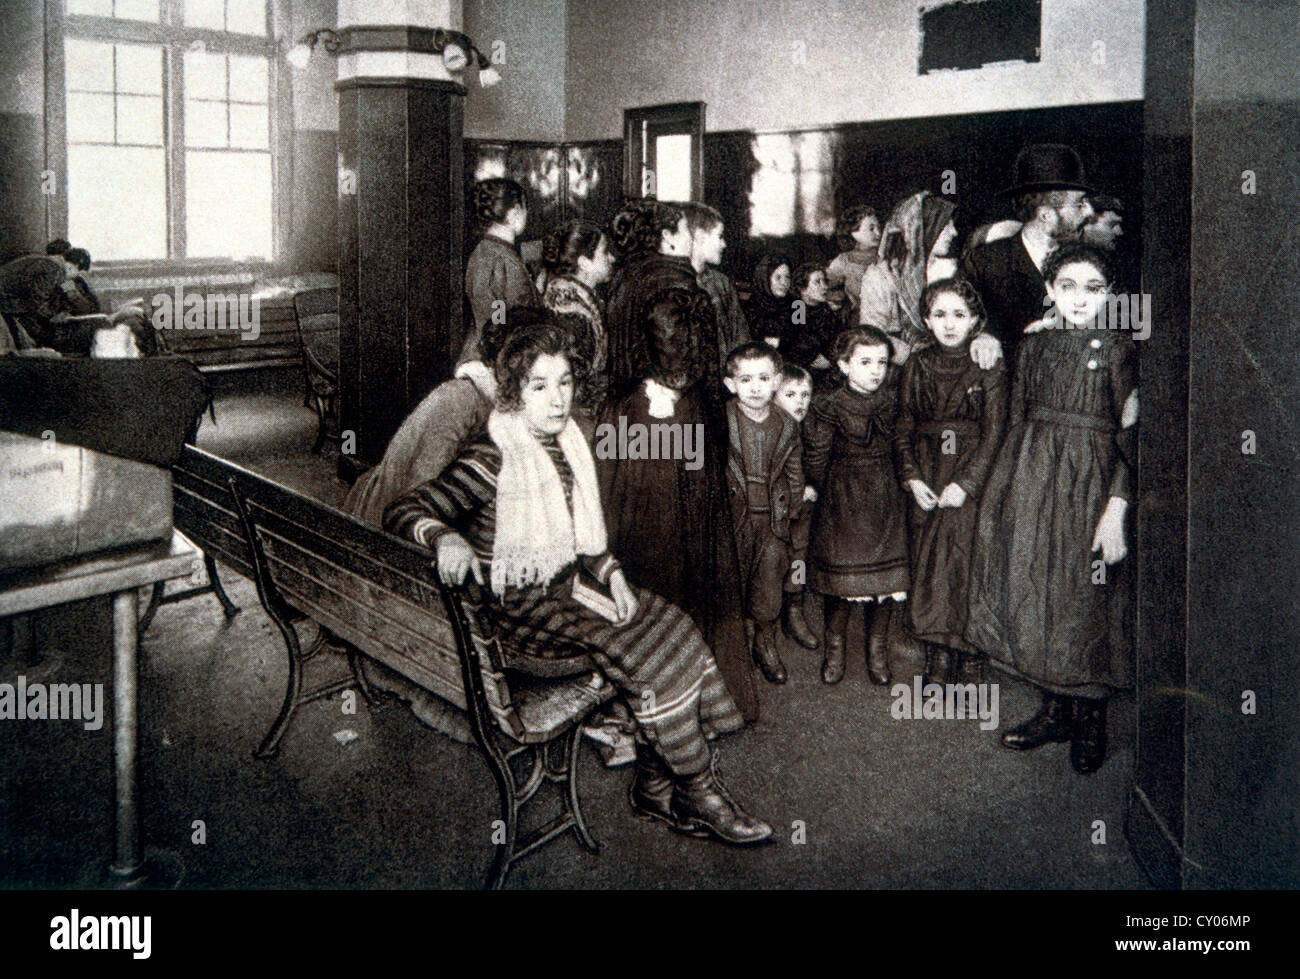 Group of Emigrants Waiting in the Detention Pen after Passing their Entrance Exam, Ellis Island, New York, USA, Stock Photo